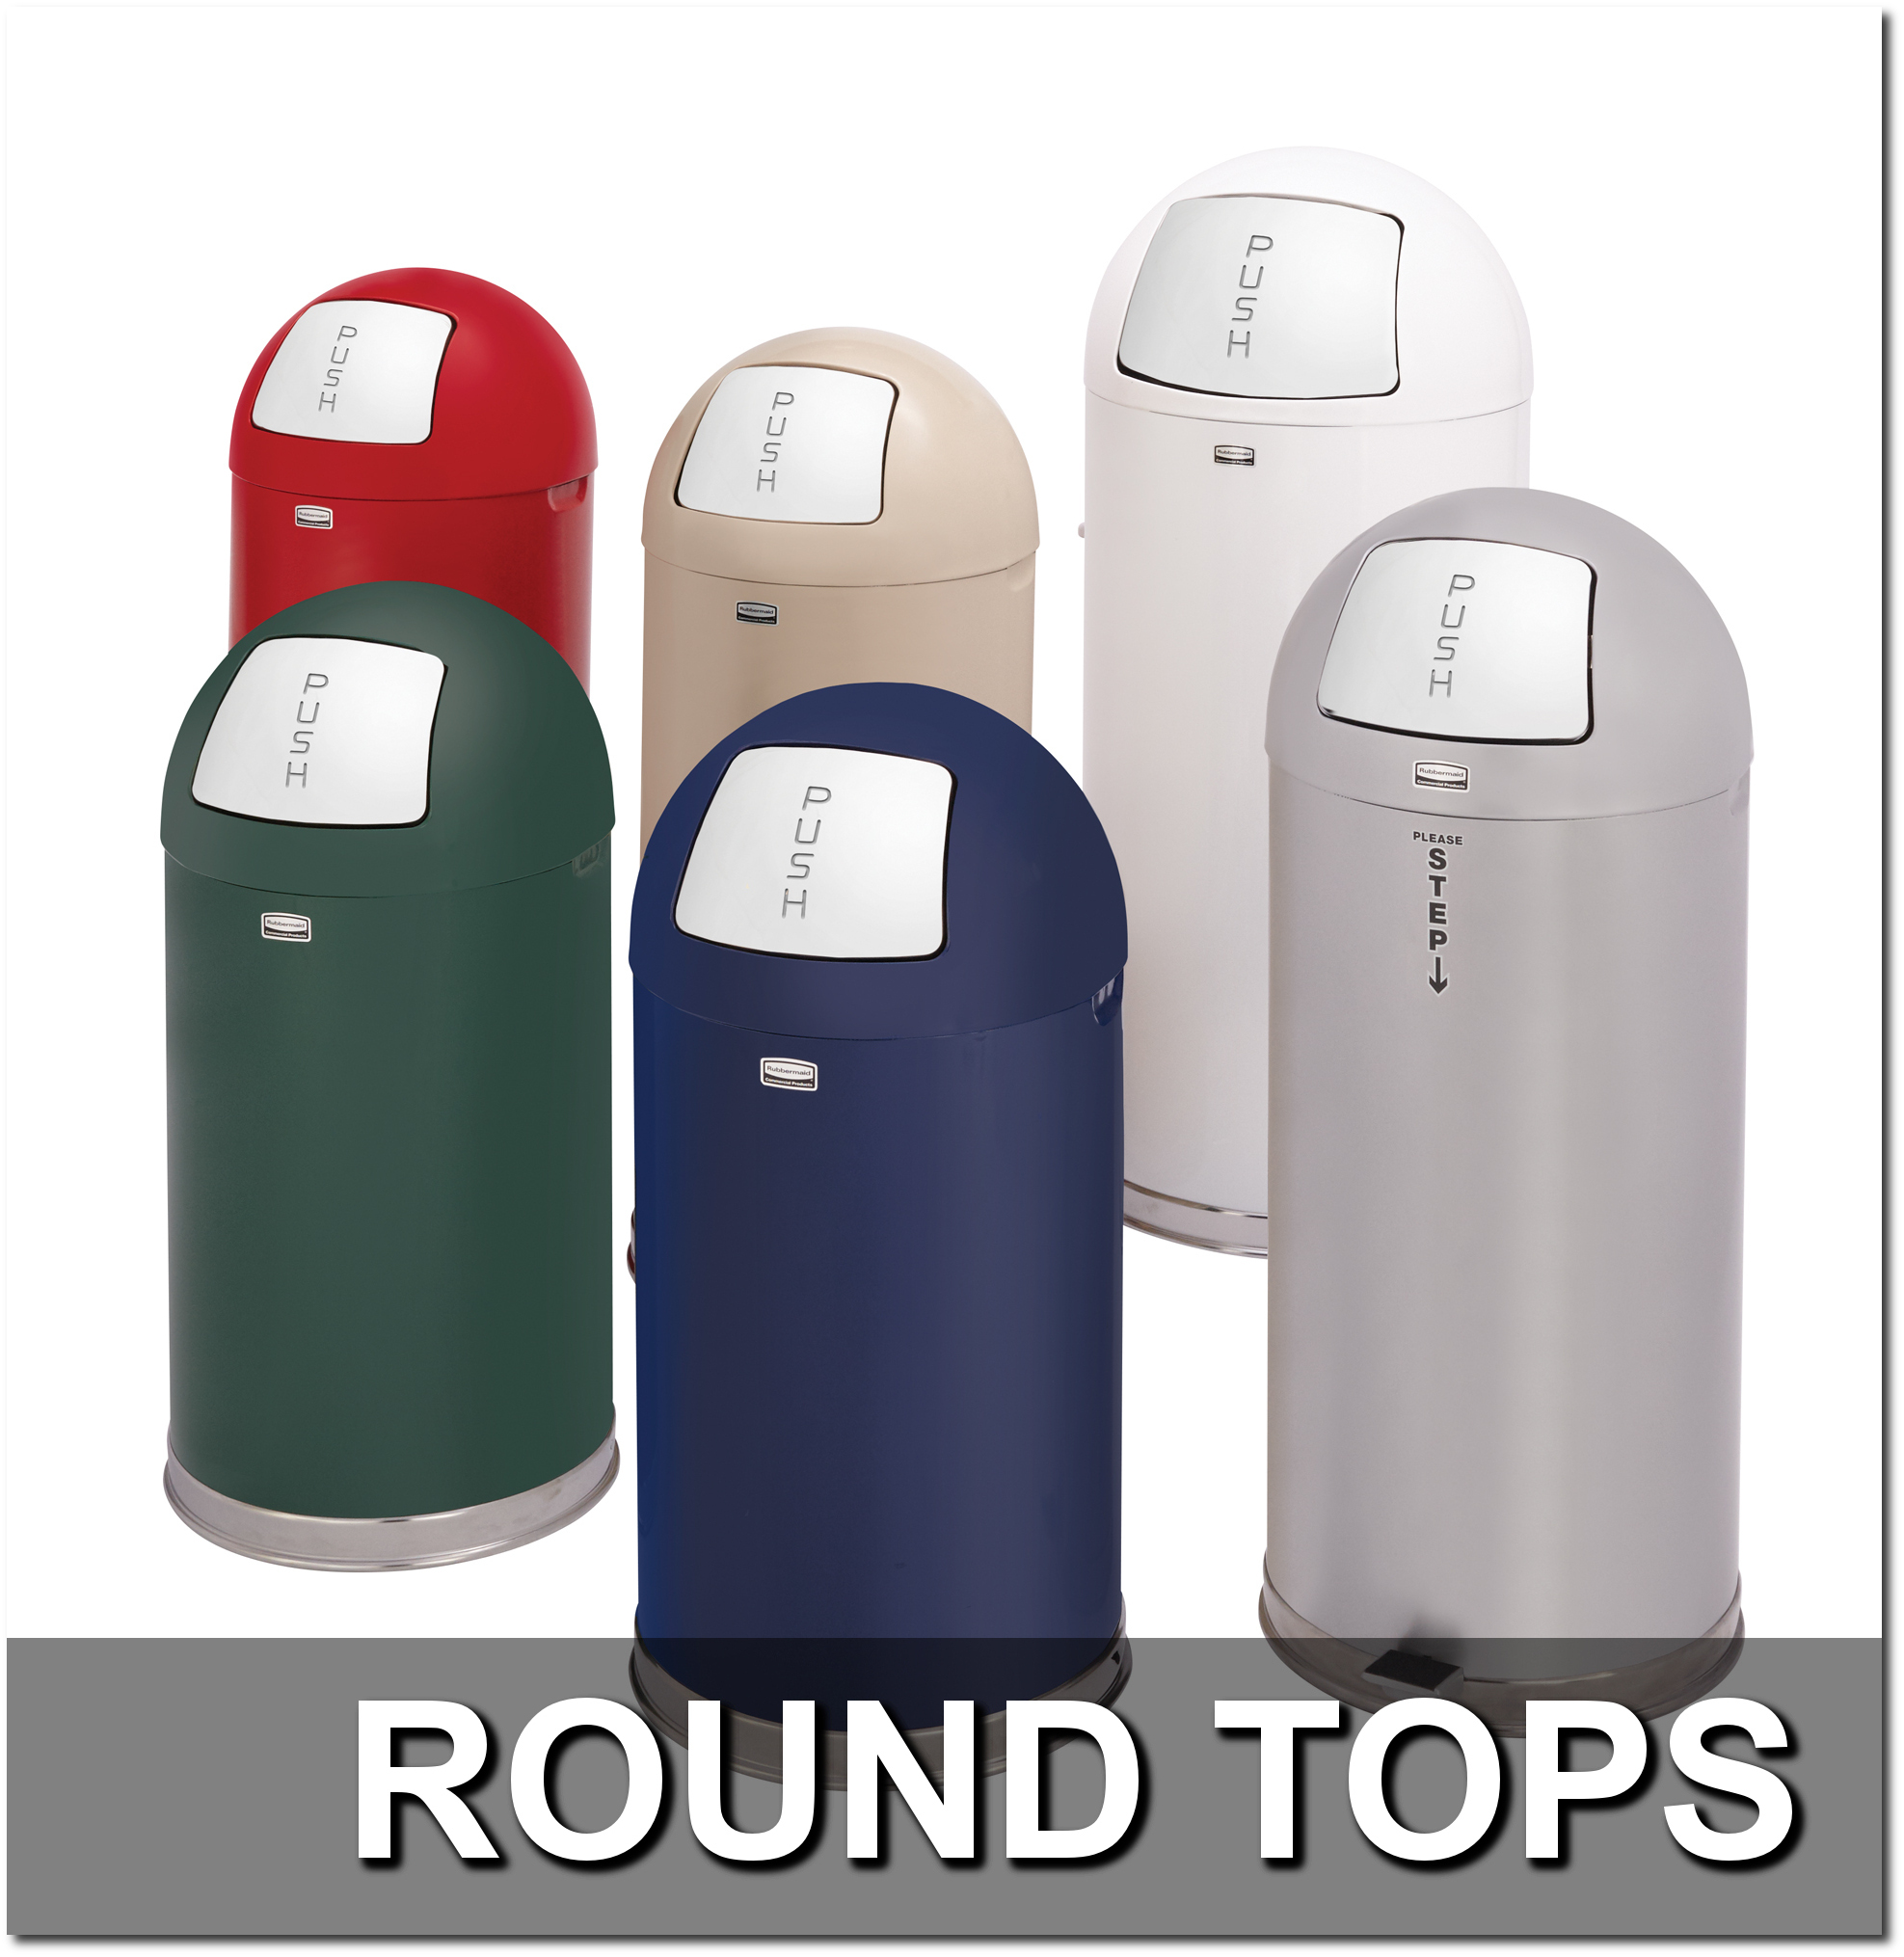 Round Top Trash Receptacles